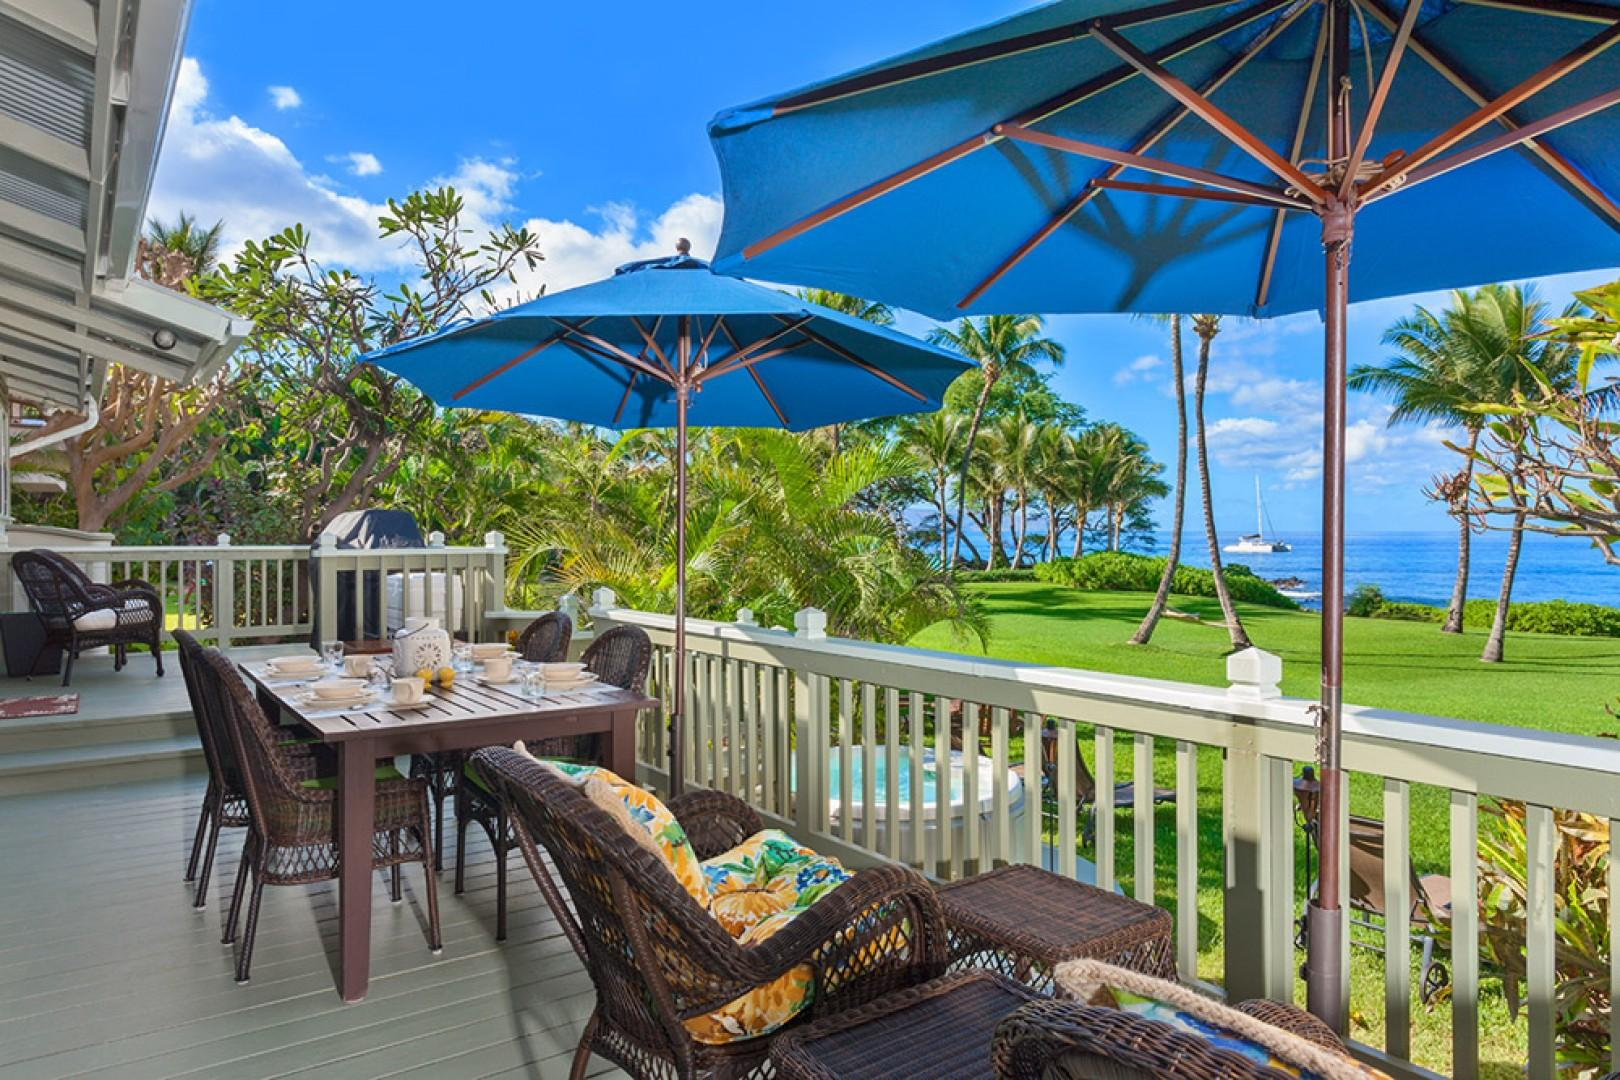 Wailea Sunset Bungalow - Ocean Front Patio with BBQ, Outdoor Dining & Lounging and Hot Tub